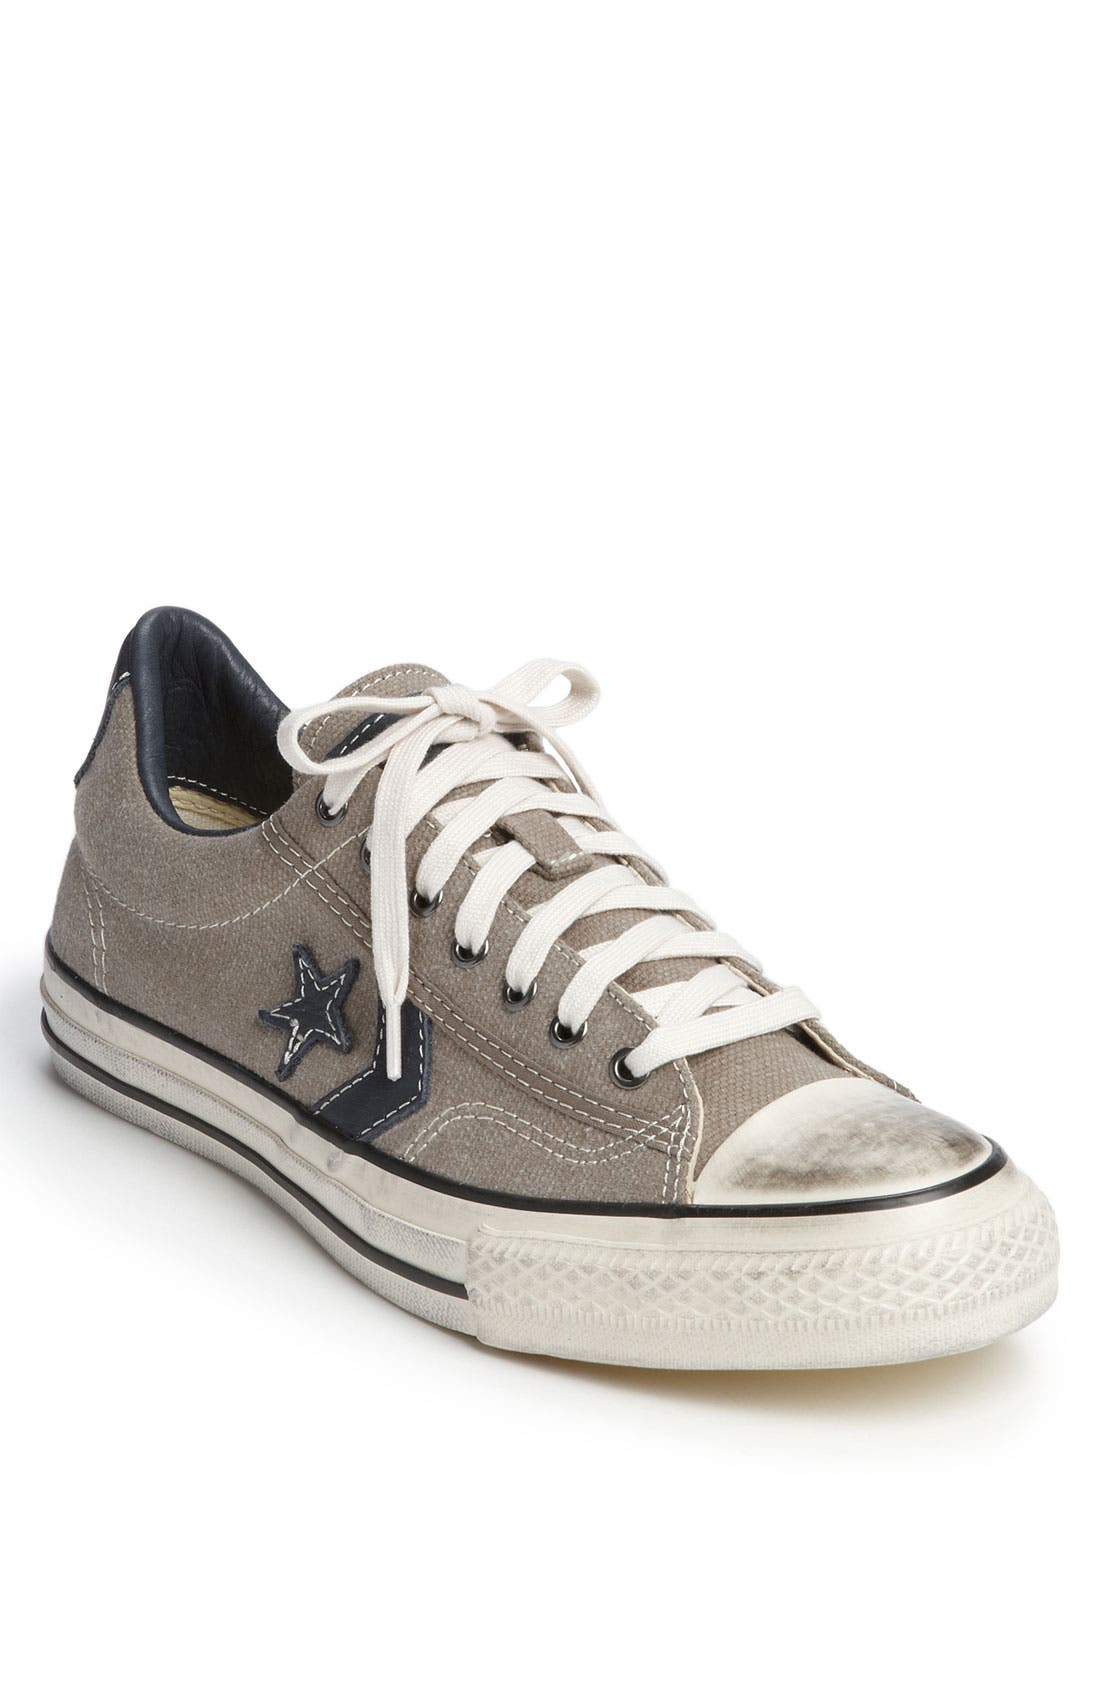 Alternate Image 1 Selected - Converse by John Varvatos 'Star Player' Canvas Sneaker